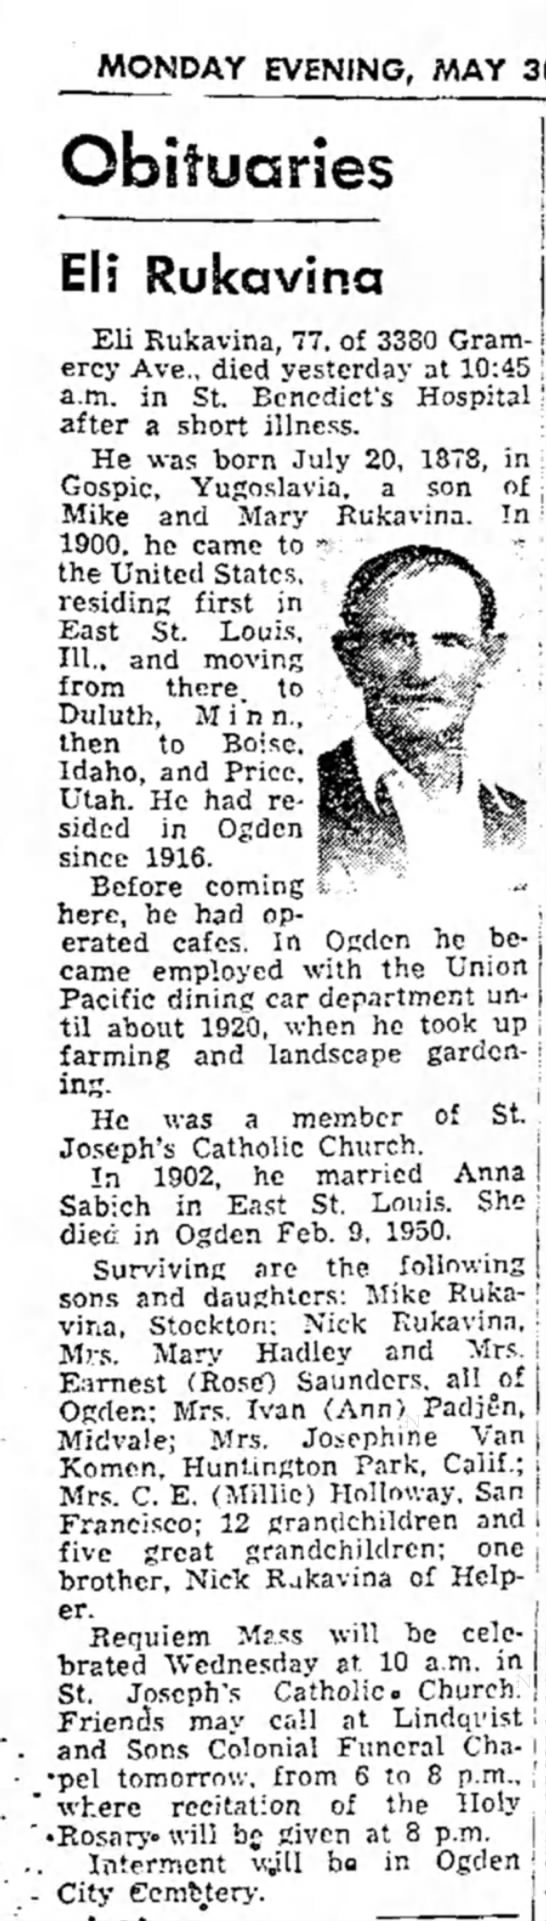 The Ogden Standard-Examiner (Ogden, Utah) 30 May 1955 page 15